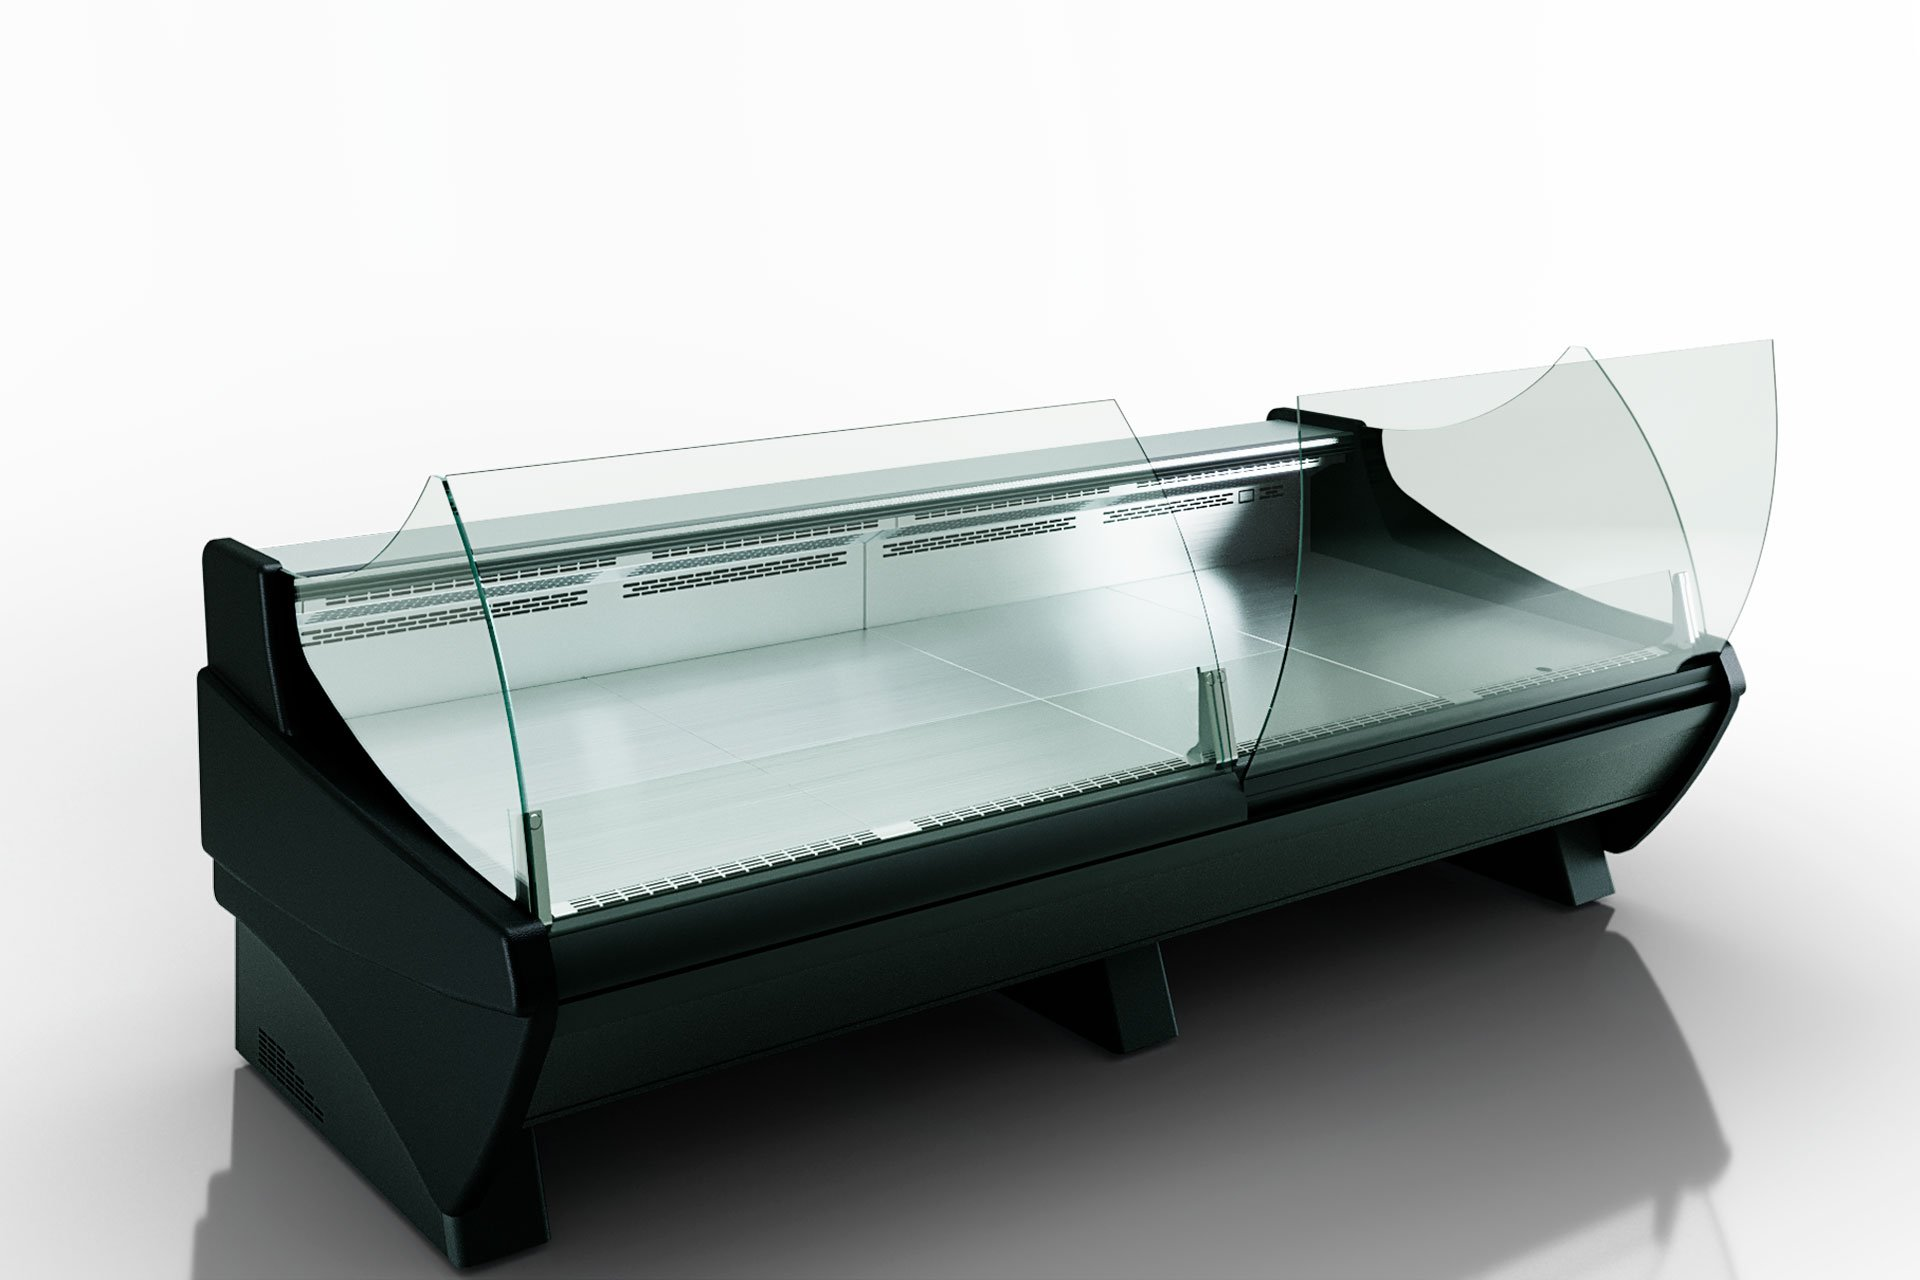 Symphony luxe MG 120 deli T2 110-DLM